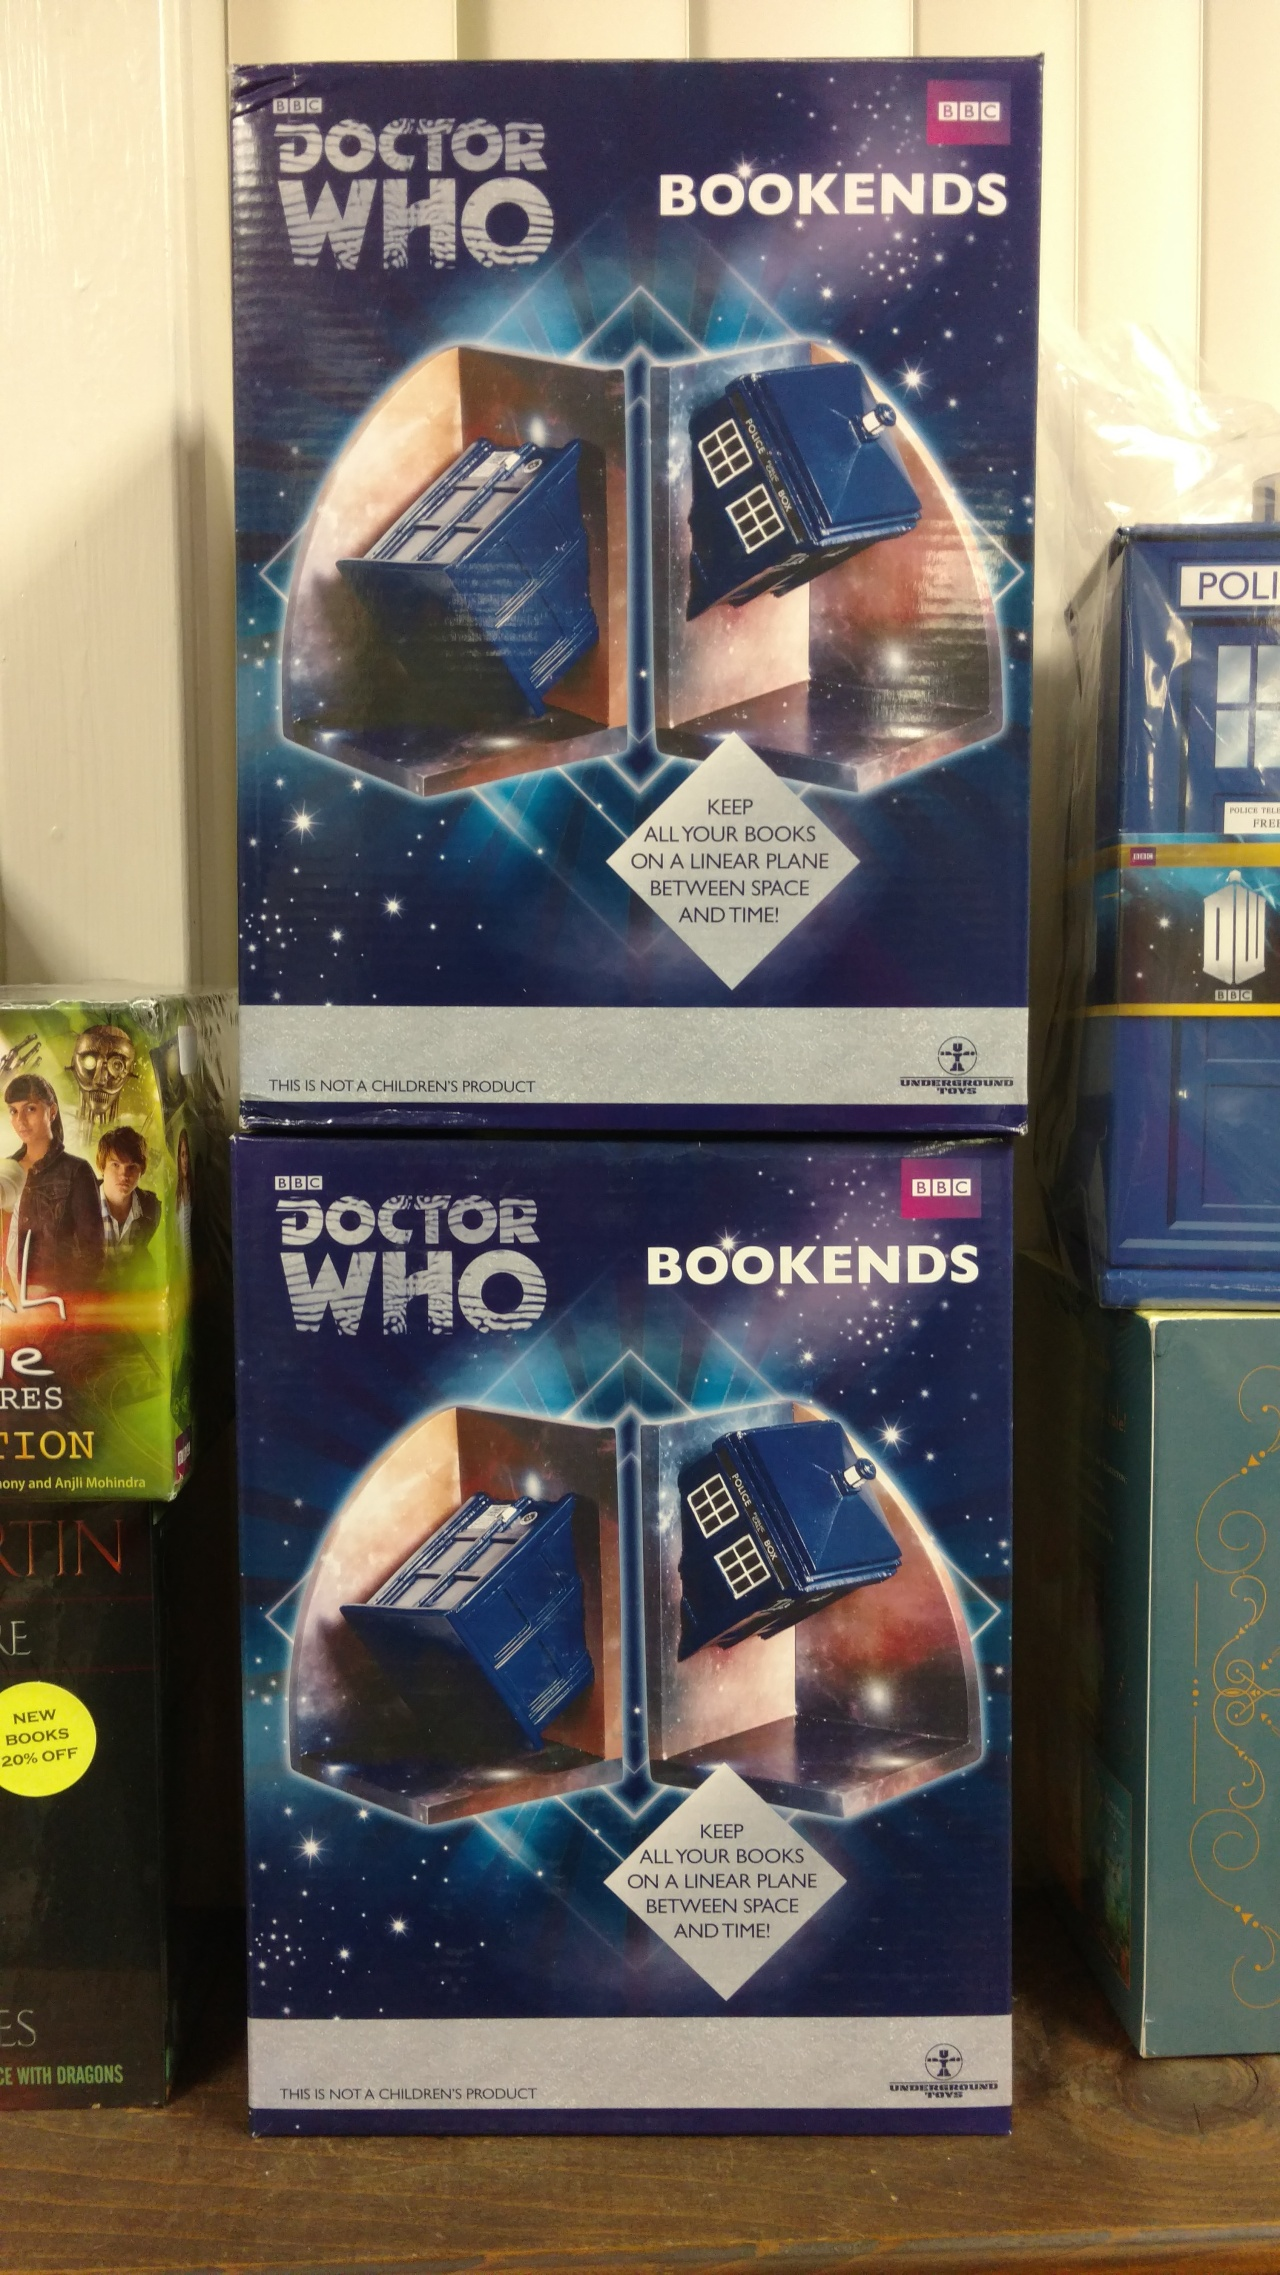 12012015 - Tardis bookends pic